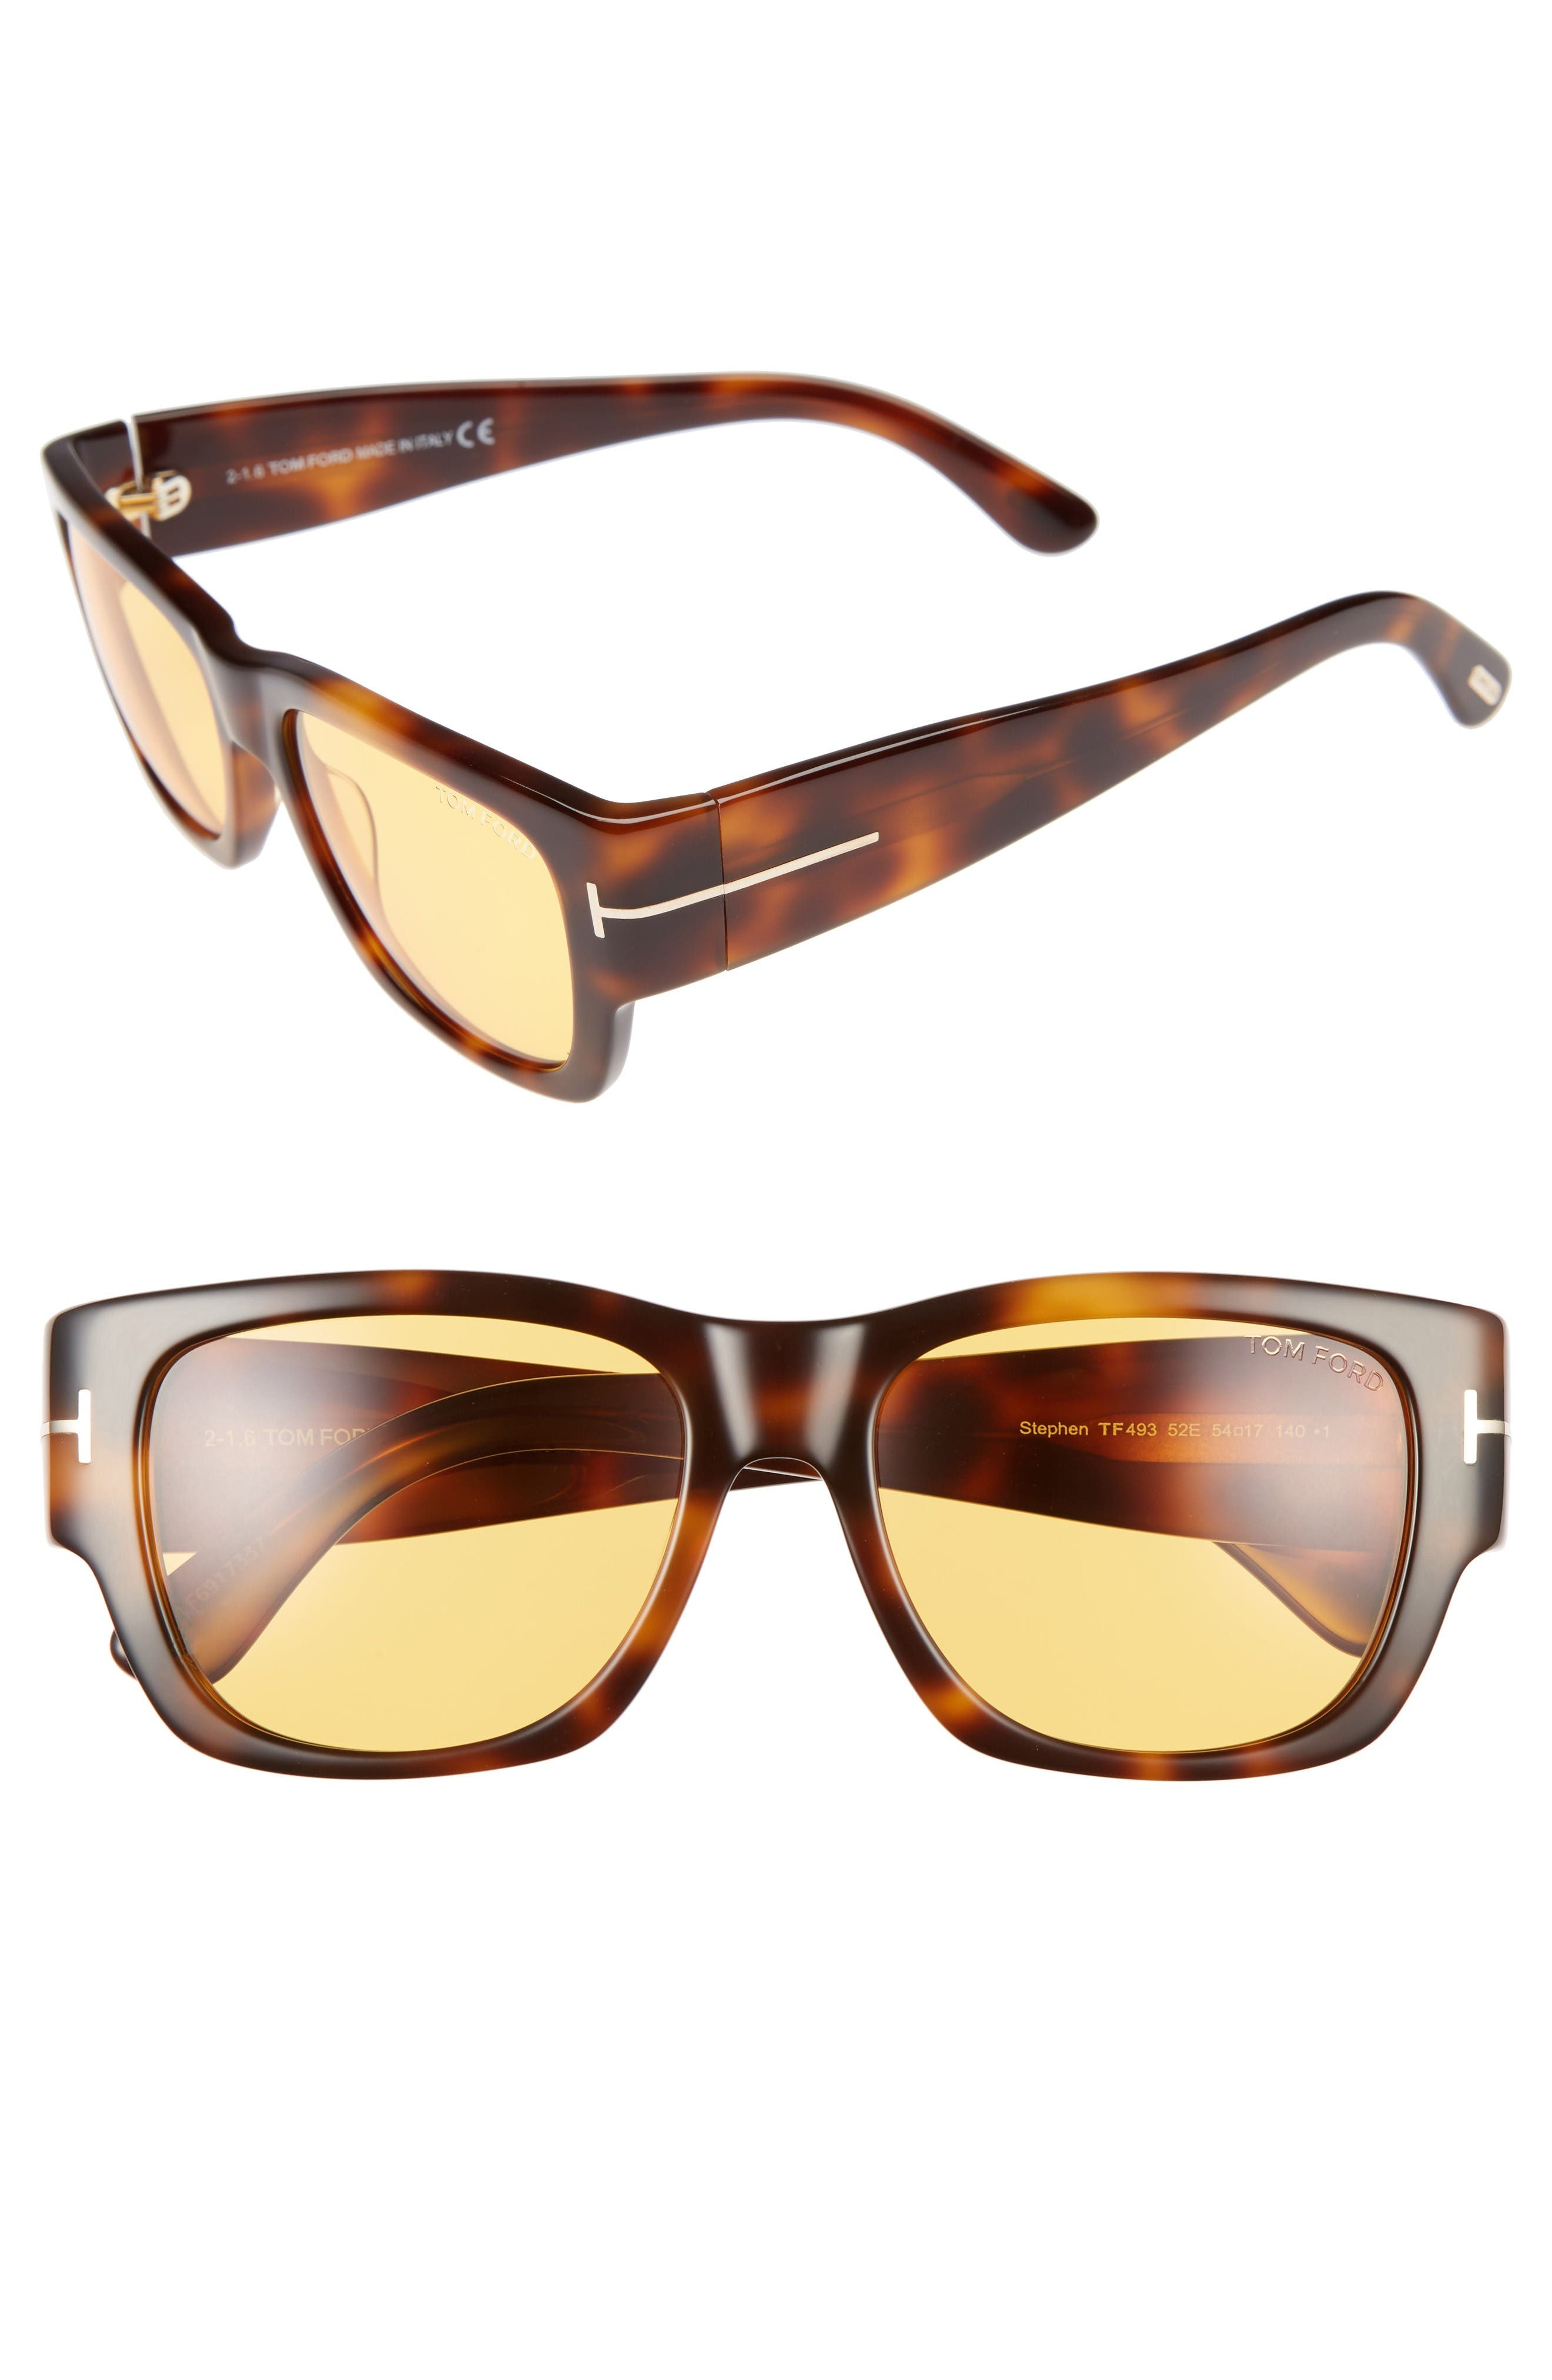 TOM FORD Stephen 54mm Retro Sunglasses